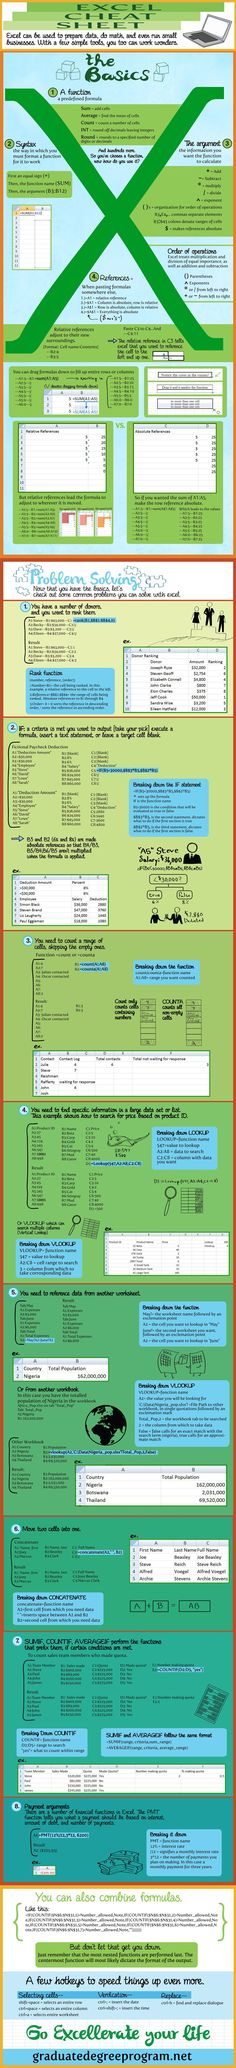 Ediblewildsus  Scenic Microsoft Excel Microsoft And Cheat Sheets On Pinterest With Glamorous Excel Cheat Httpgraduatedegreeprogramnetexcelcheats With Cute If And Statements Excel Also How To Find Circular Reference In Excel In Addition How To Do Macros In Excel And Excel File Types As Well As Excel Loop Through Rows Additionally Best Excel Add Ins From Pinterestcom With Ediblewildsus  Glamorous Microsoft Excel Microsoft And Cheat Sheets On Pinterest With Cute Excel Cheat Httpgraduatedegreeprogramnetexcelcheats And Scenic If And Statements Excel Also How To Find Circular Reference In Excel In Addition How To Do Macros In Excel From Pinterestcom